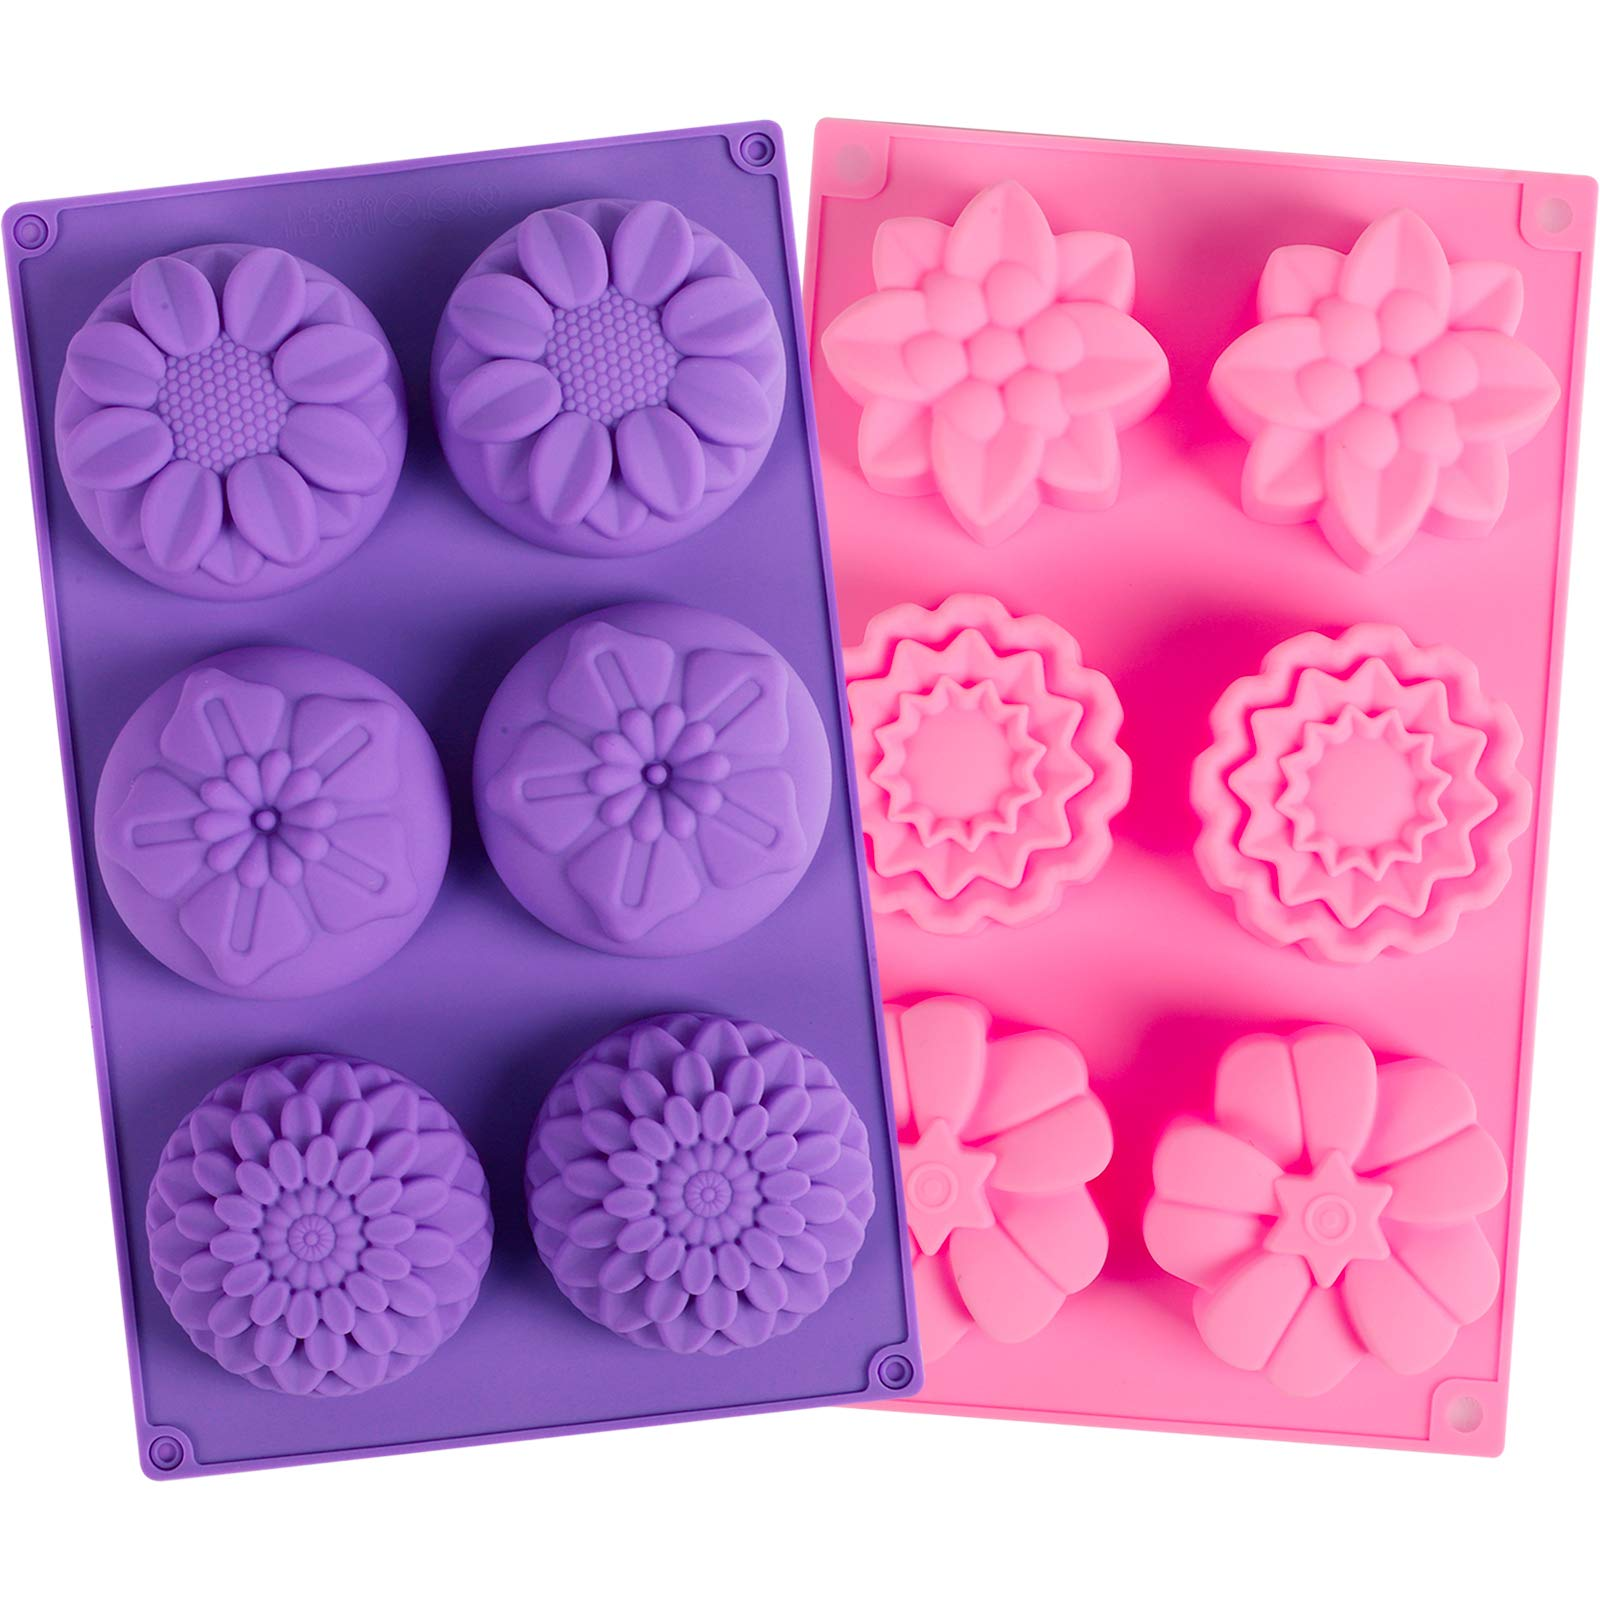 YGEOMER 2 PCS 6 Cavity Assorted Silicone Flower Soap Mold DIY Soap Mold Handmade Chocolate Biscuit Cake Muffine Silicone Mold